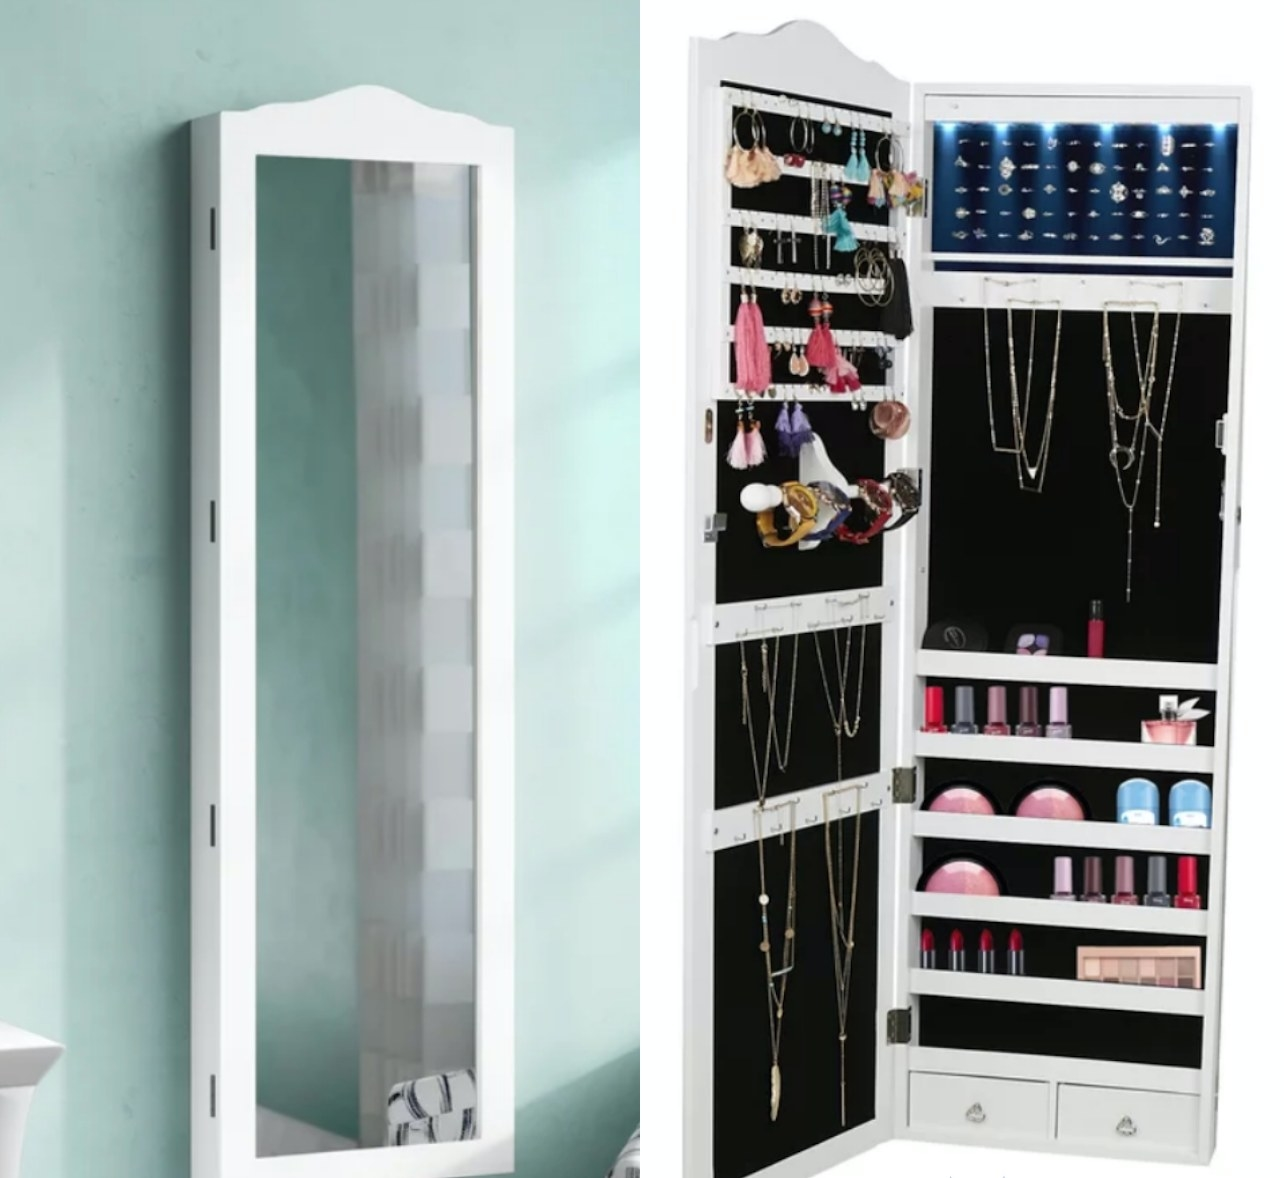 White wall mirror that opens into a jewelery storage unit